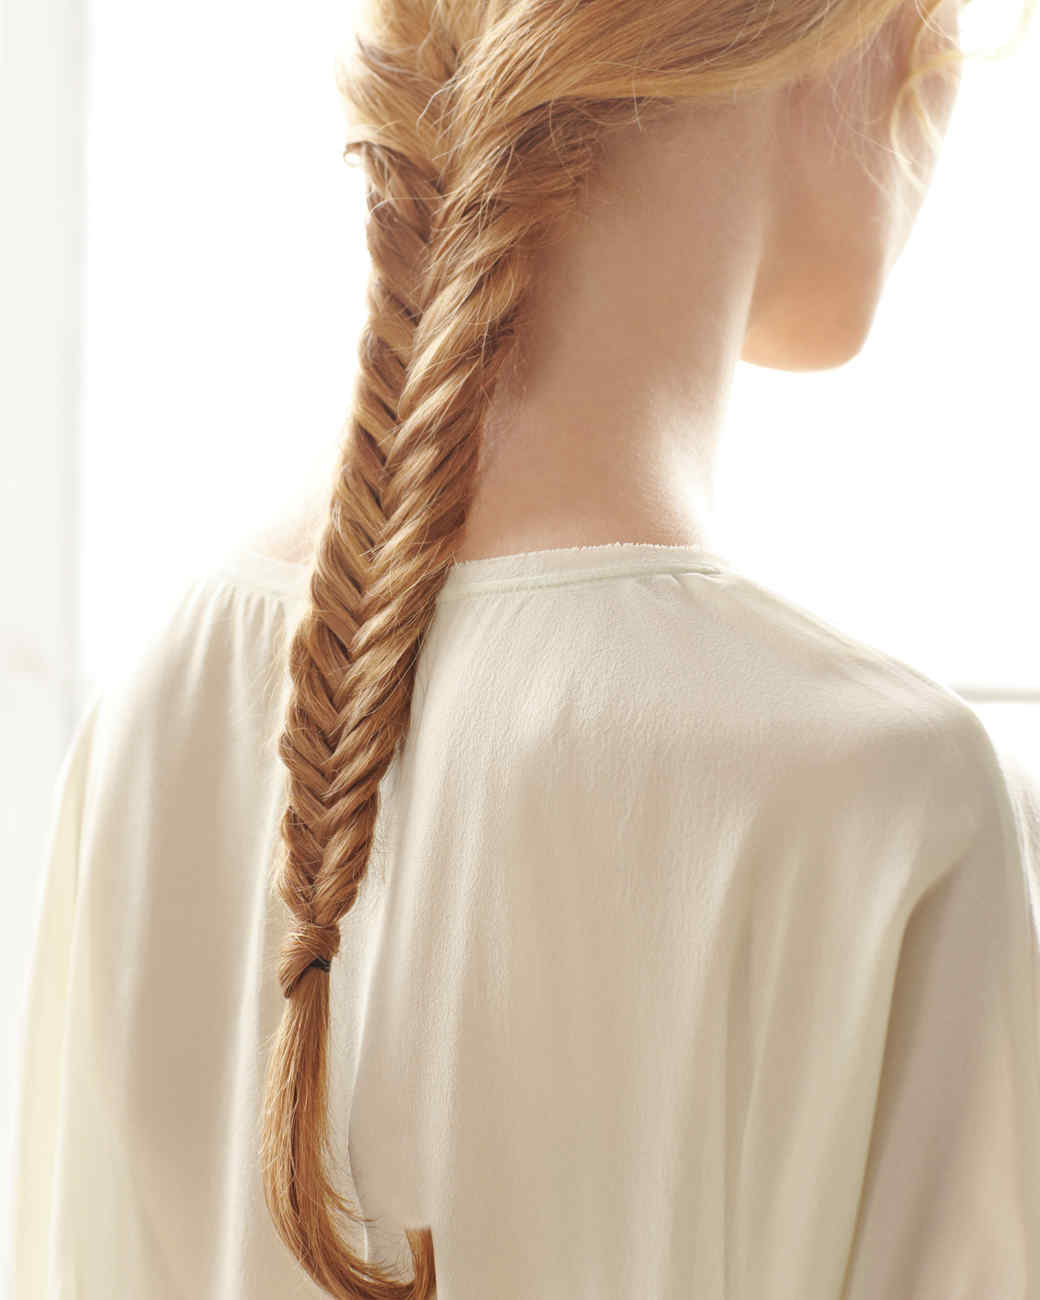 Hair-Braiding How-To | Martha Stewart